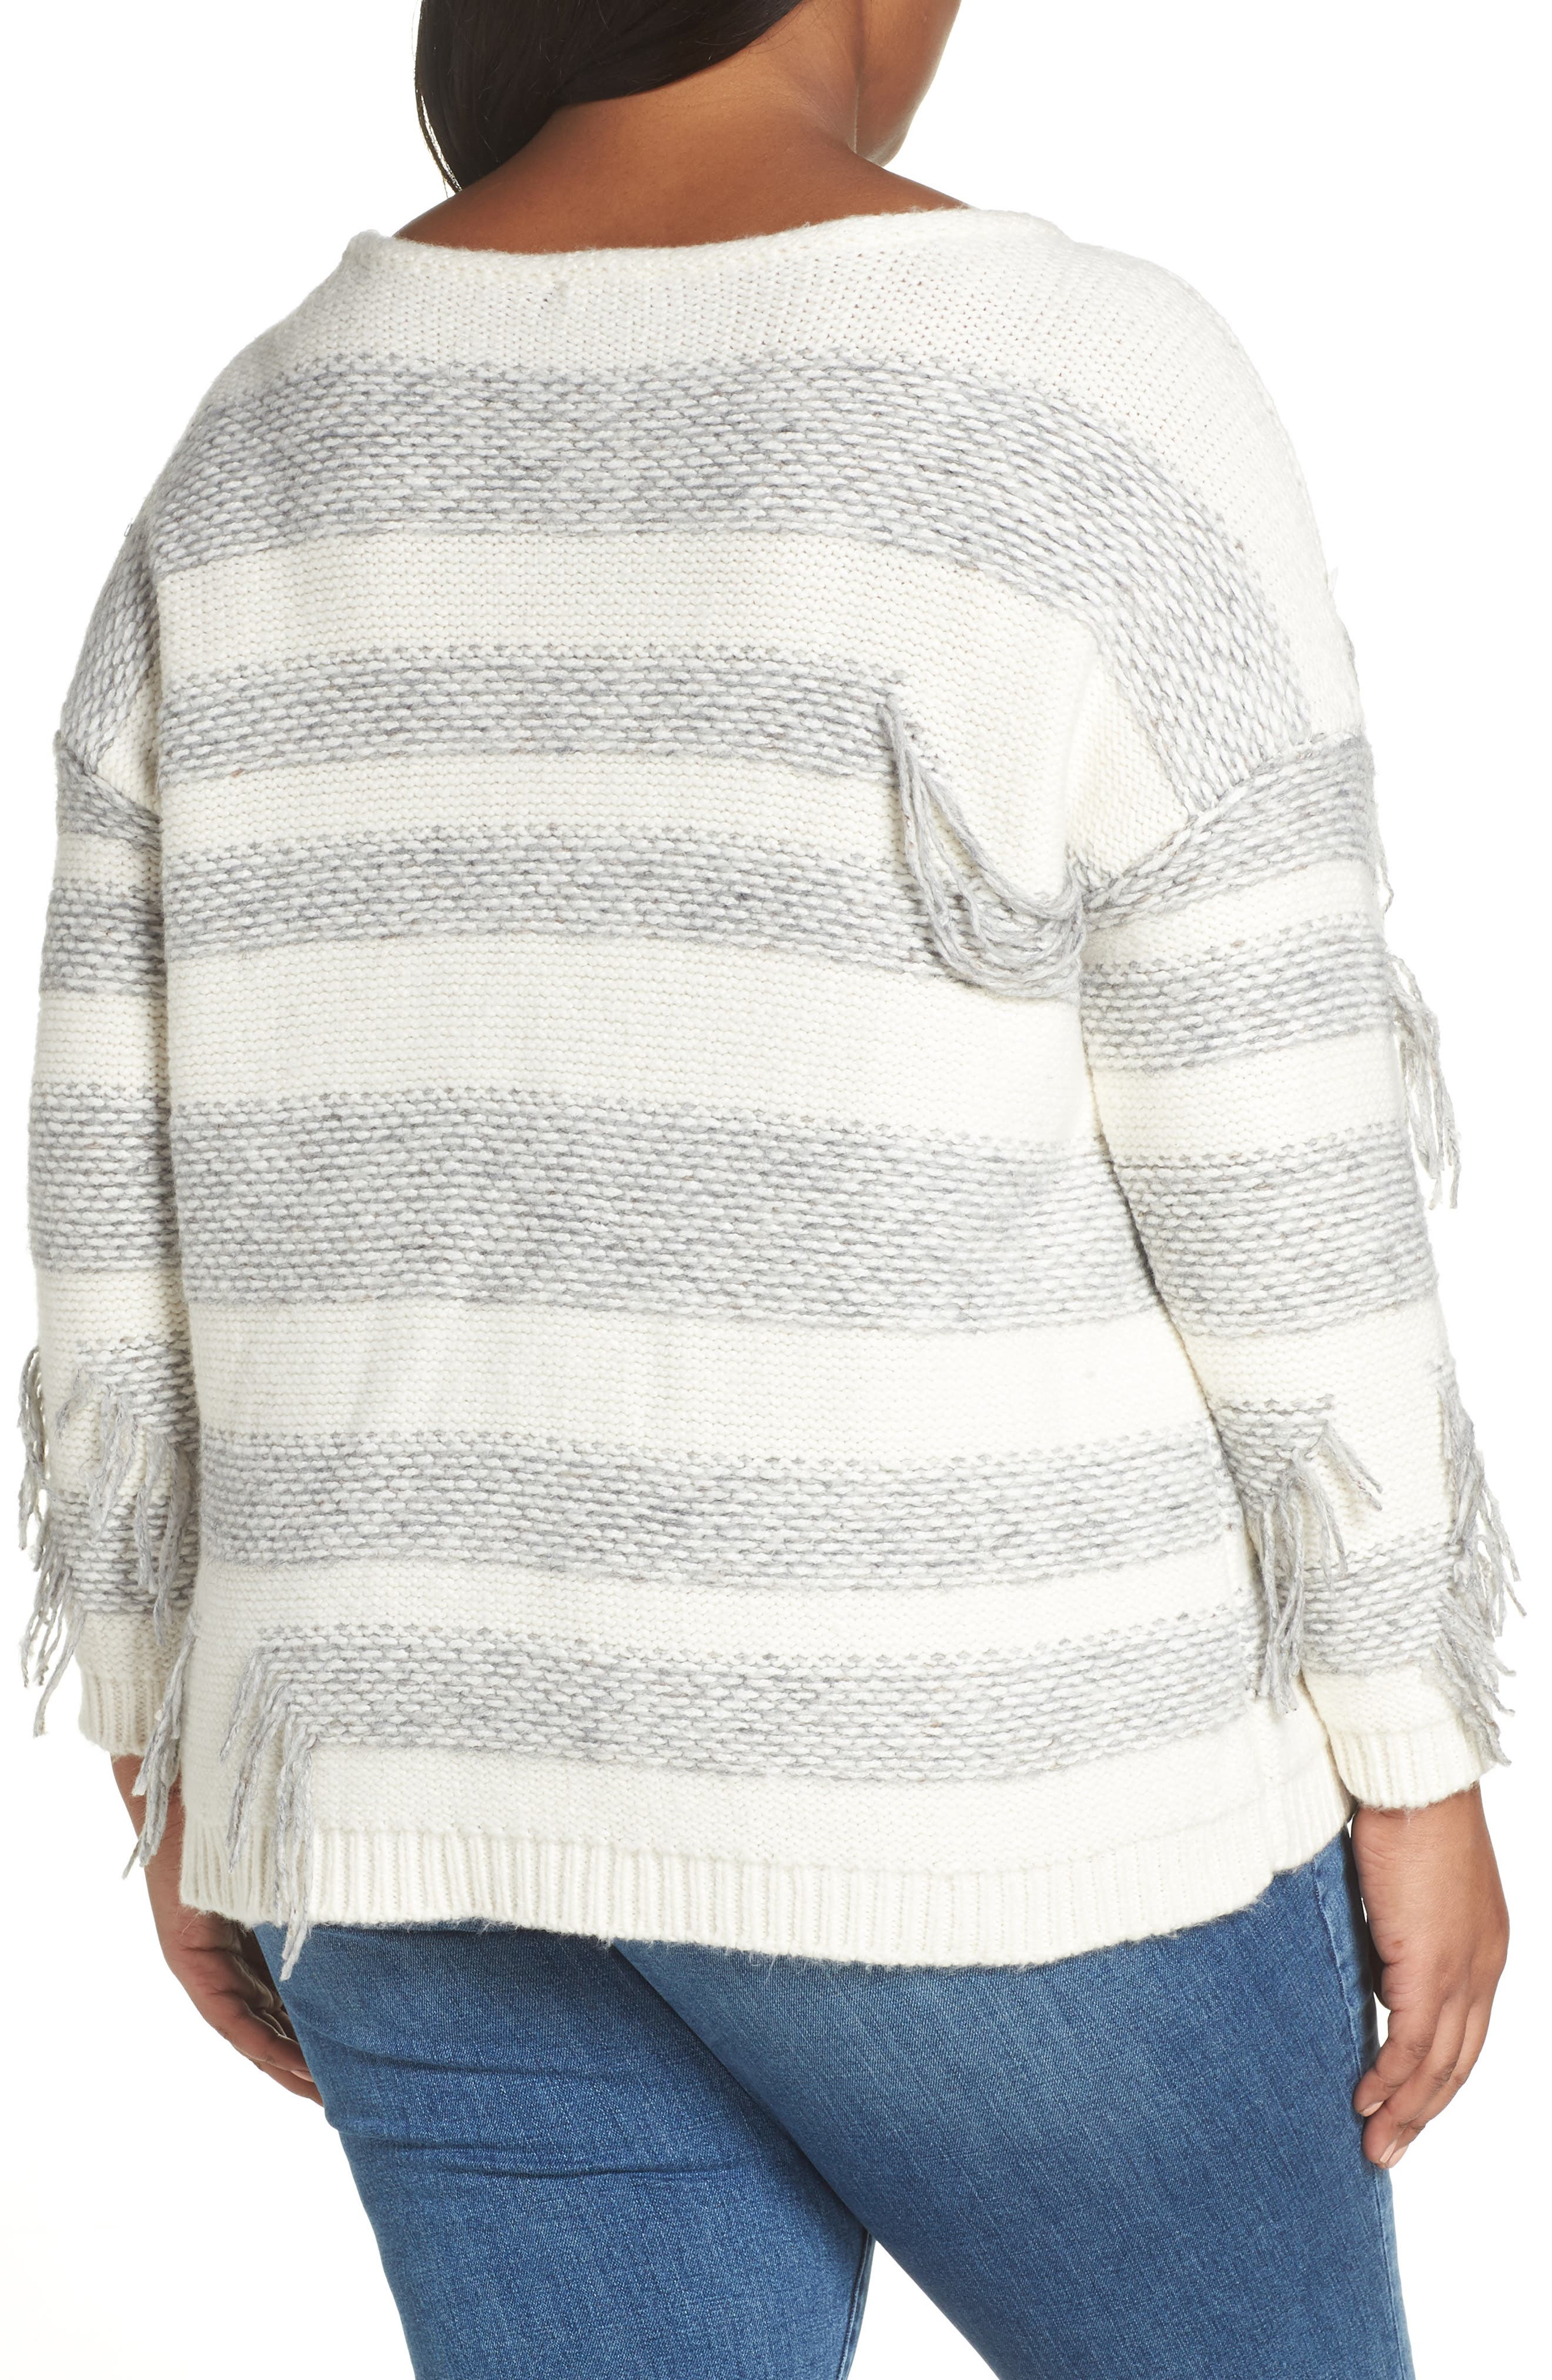 Fringe Detail Stripe Cotton Blend Sweater,                             Alternate thumbnail 2, color,                             LIGHT HEATHER GREY